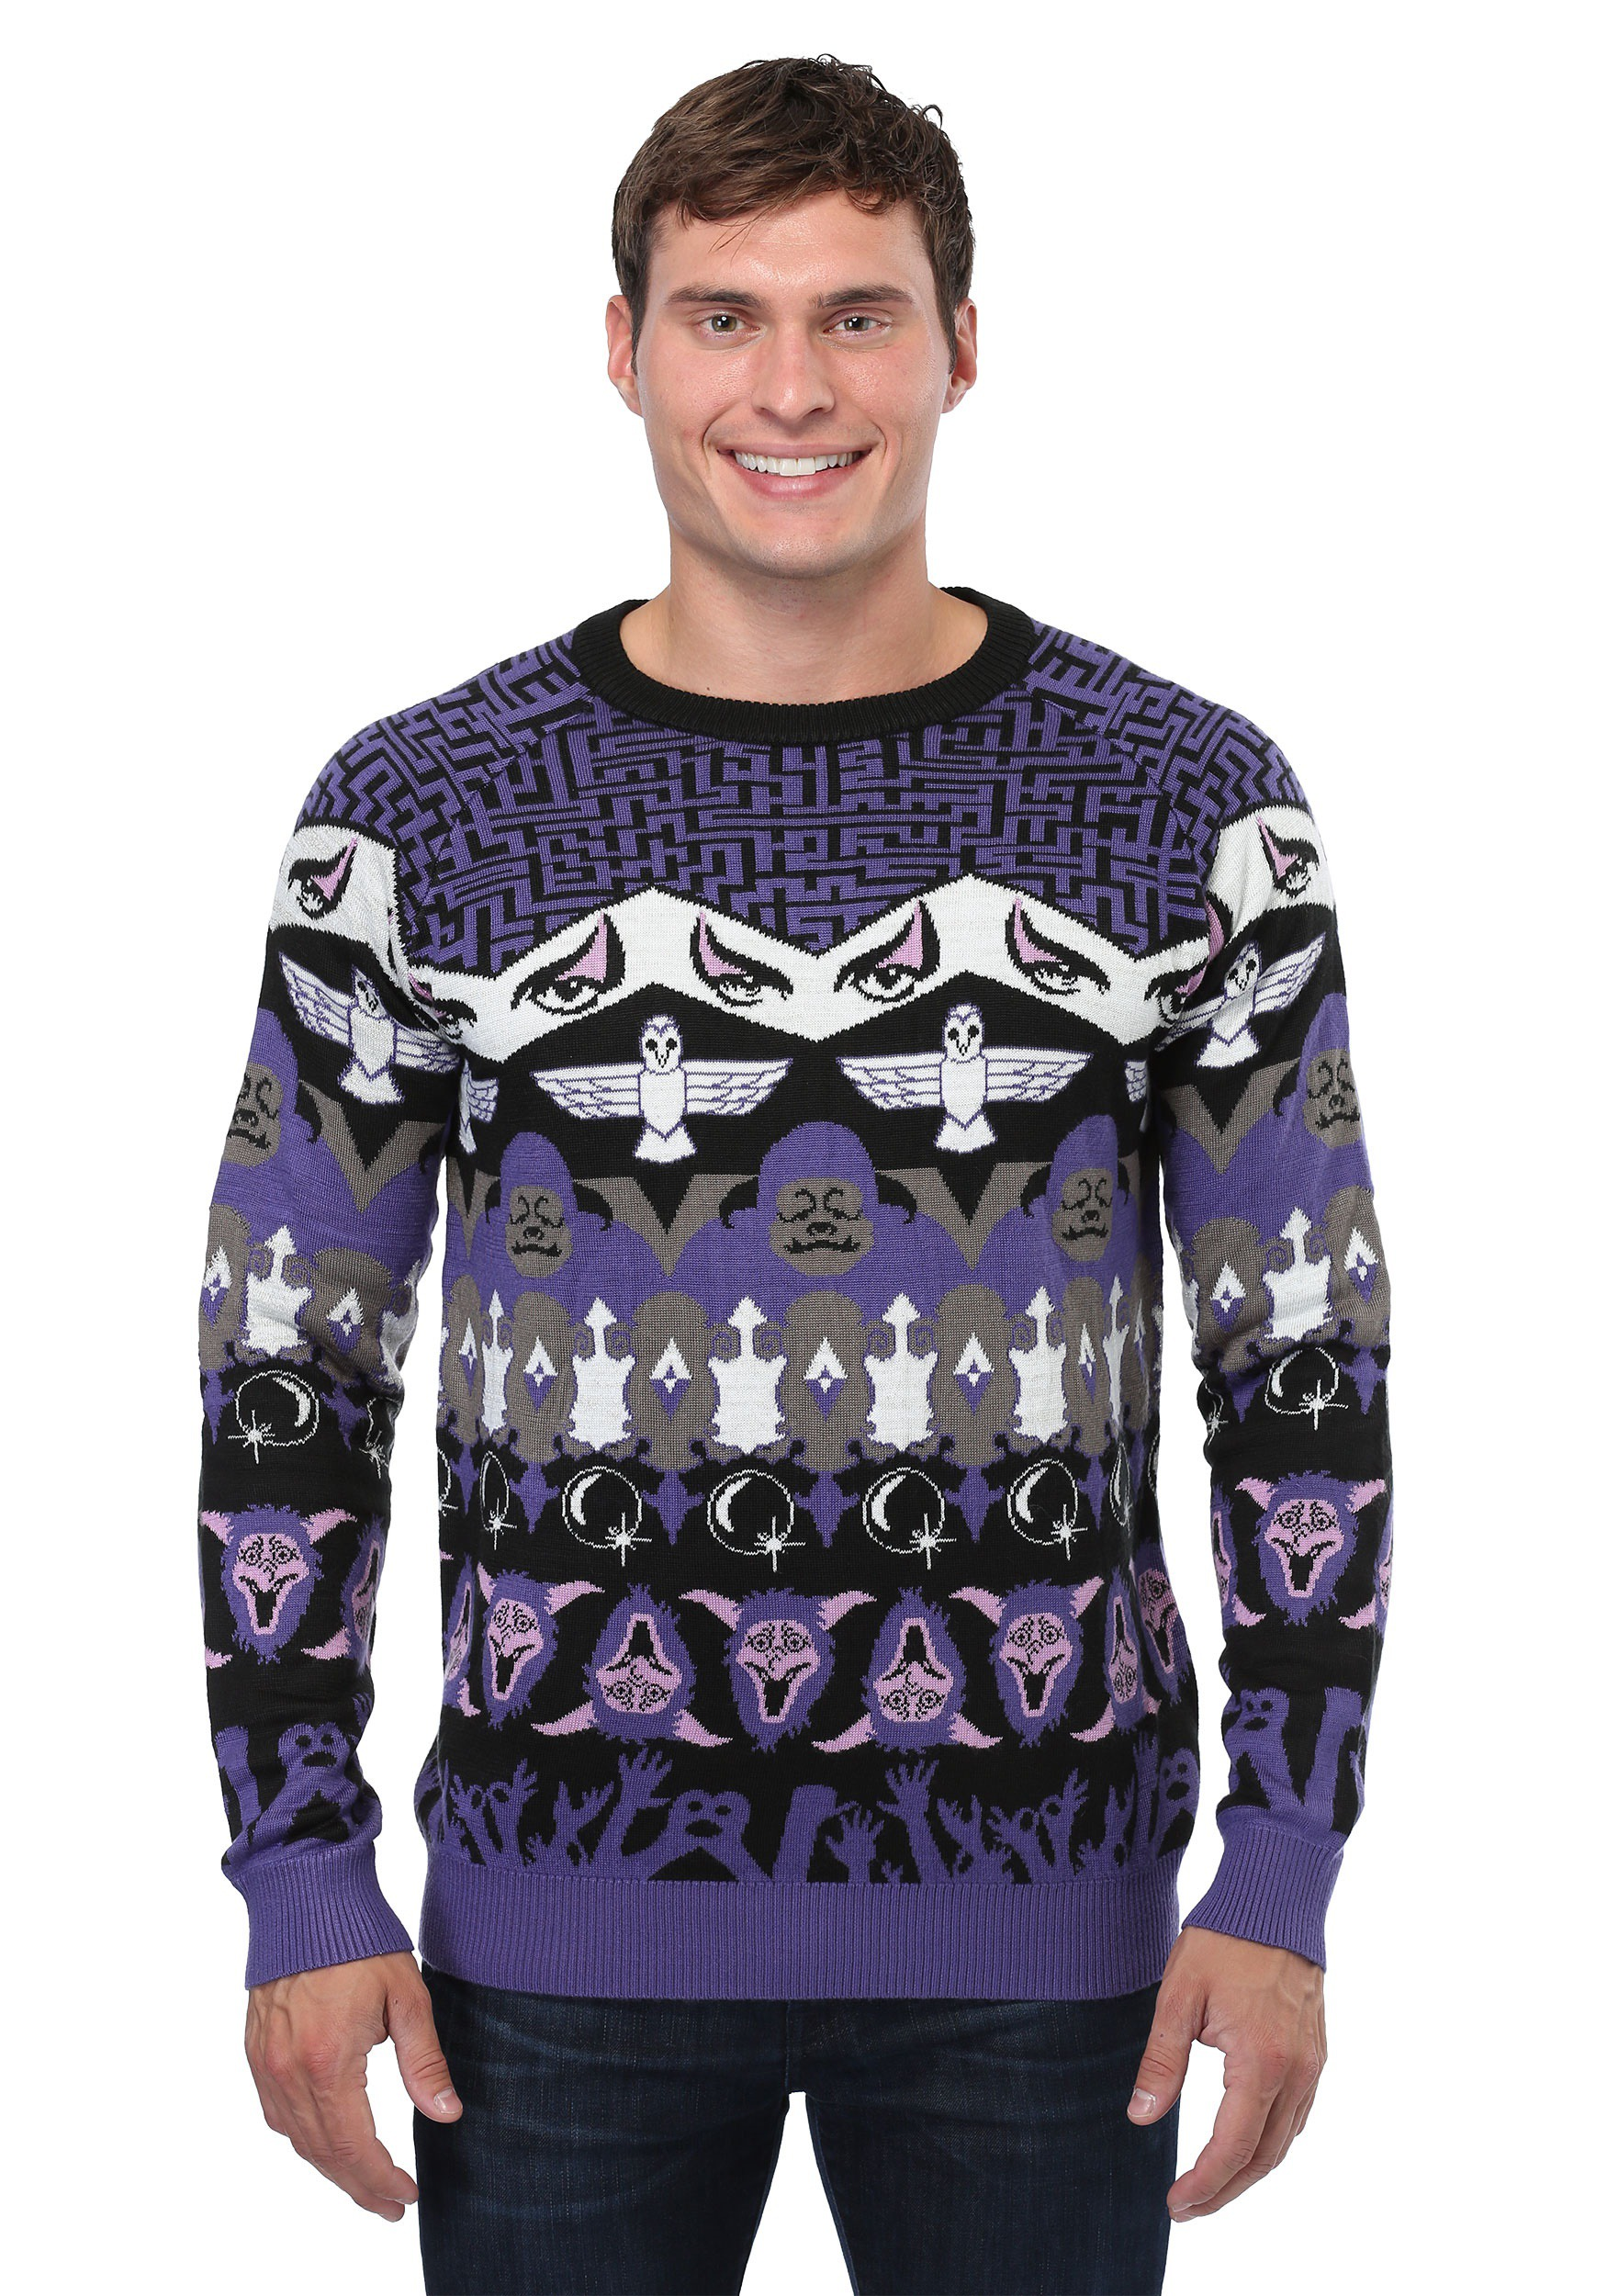 Labyrinth Character Ugly Christmas Sweater